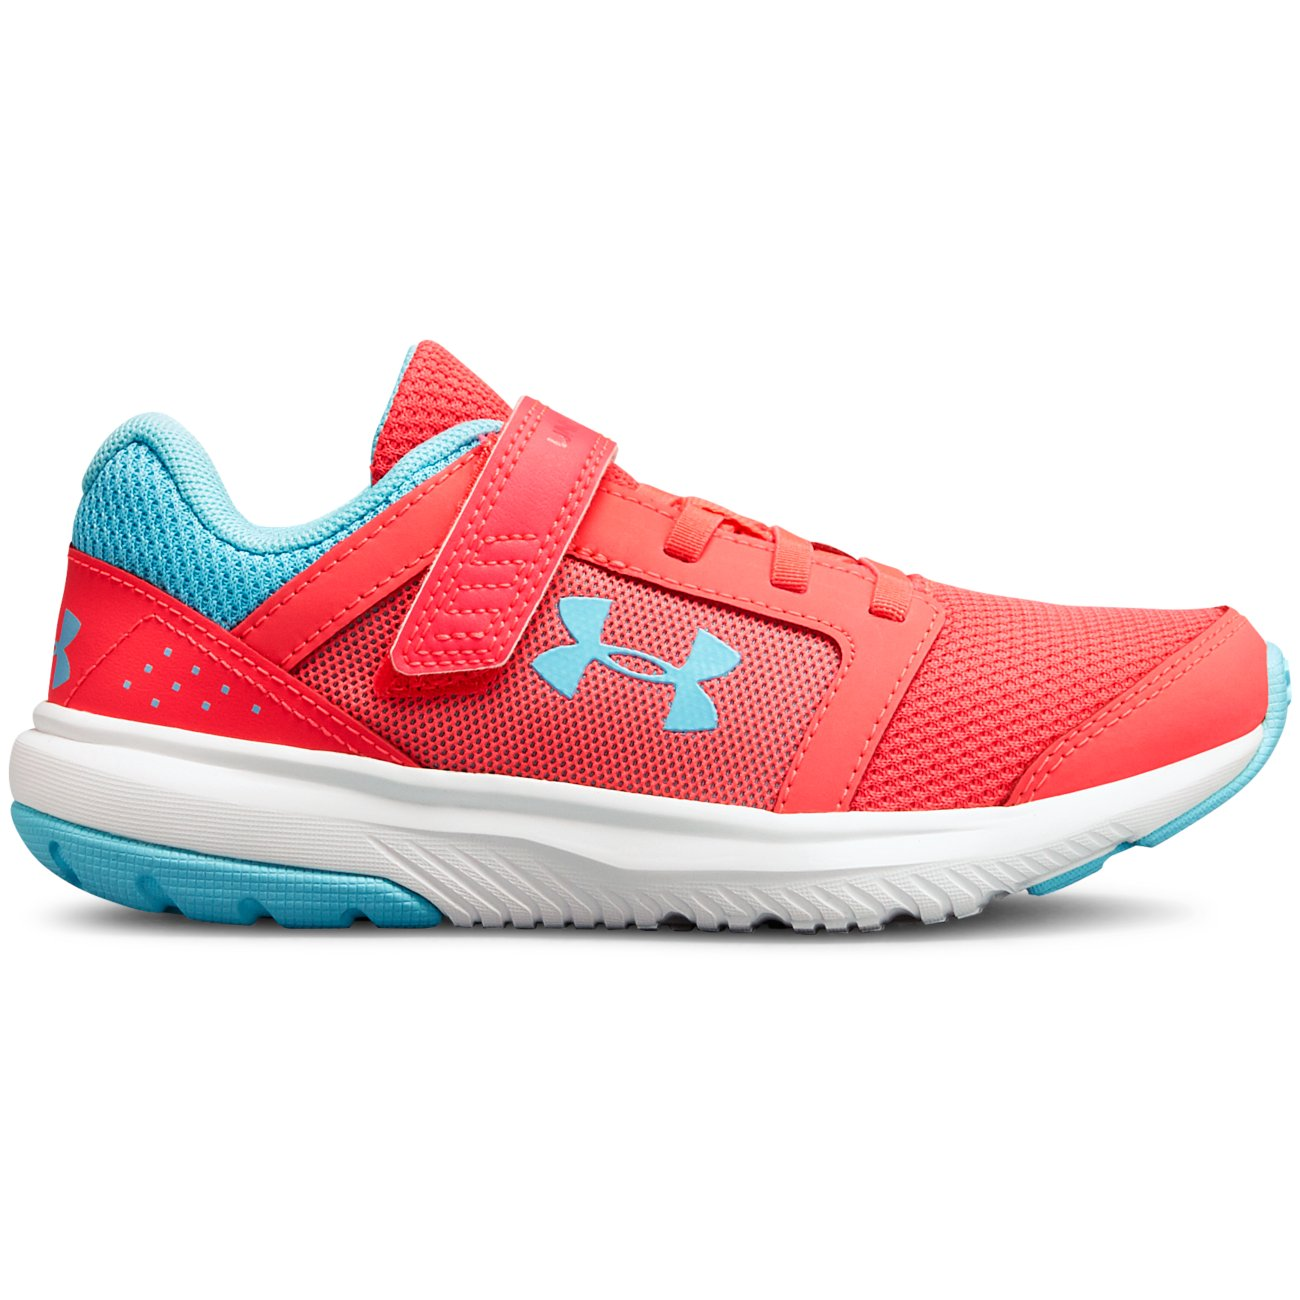 Under Armour Penta Pink/Venetian Blue Unlimited A/C Sneaker